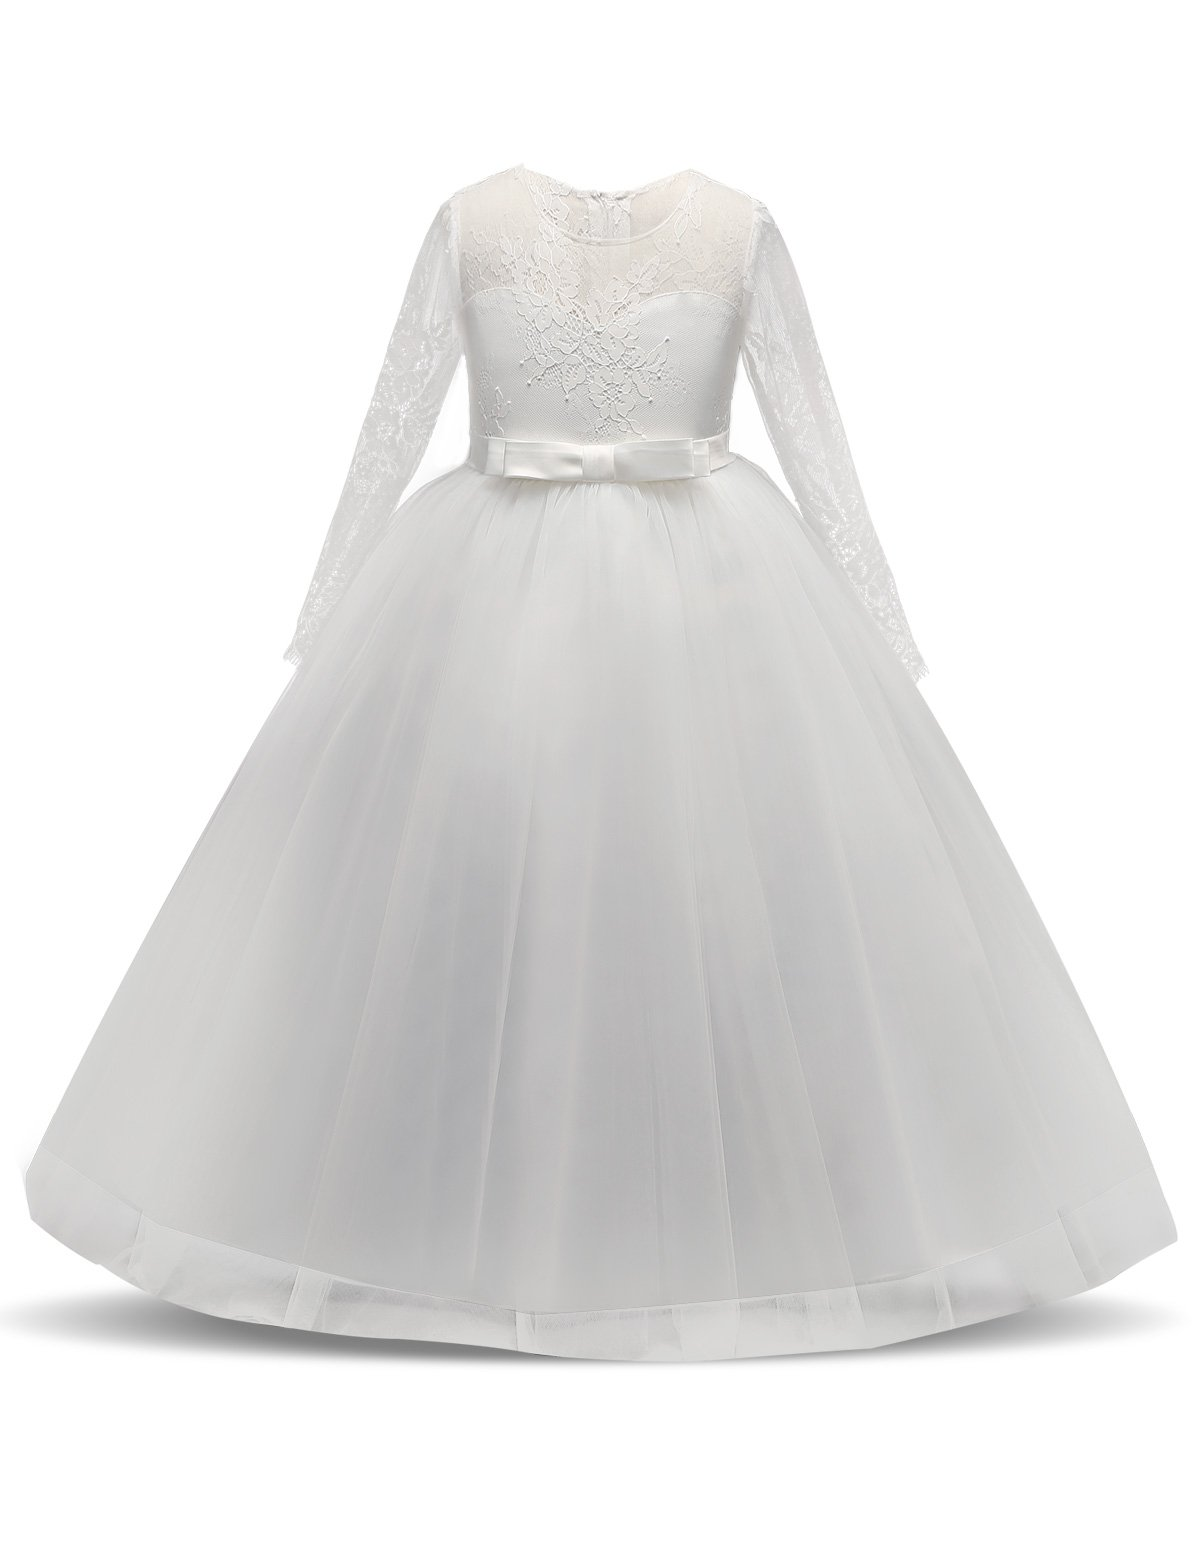 NNJXD Girl Long Sleeves Embroidery Tulle Princess Wedding Dress Size (140) 8-9 Years White